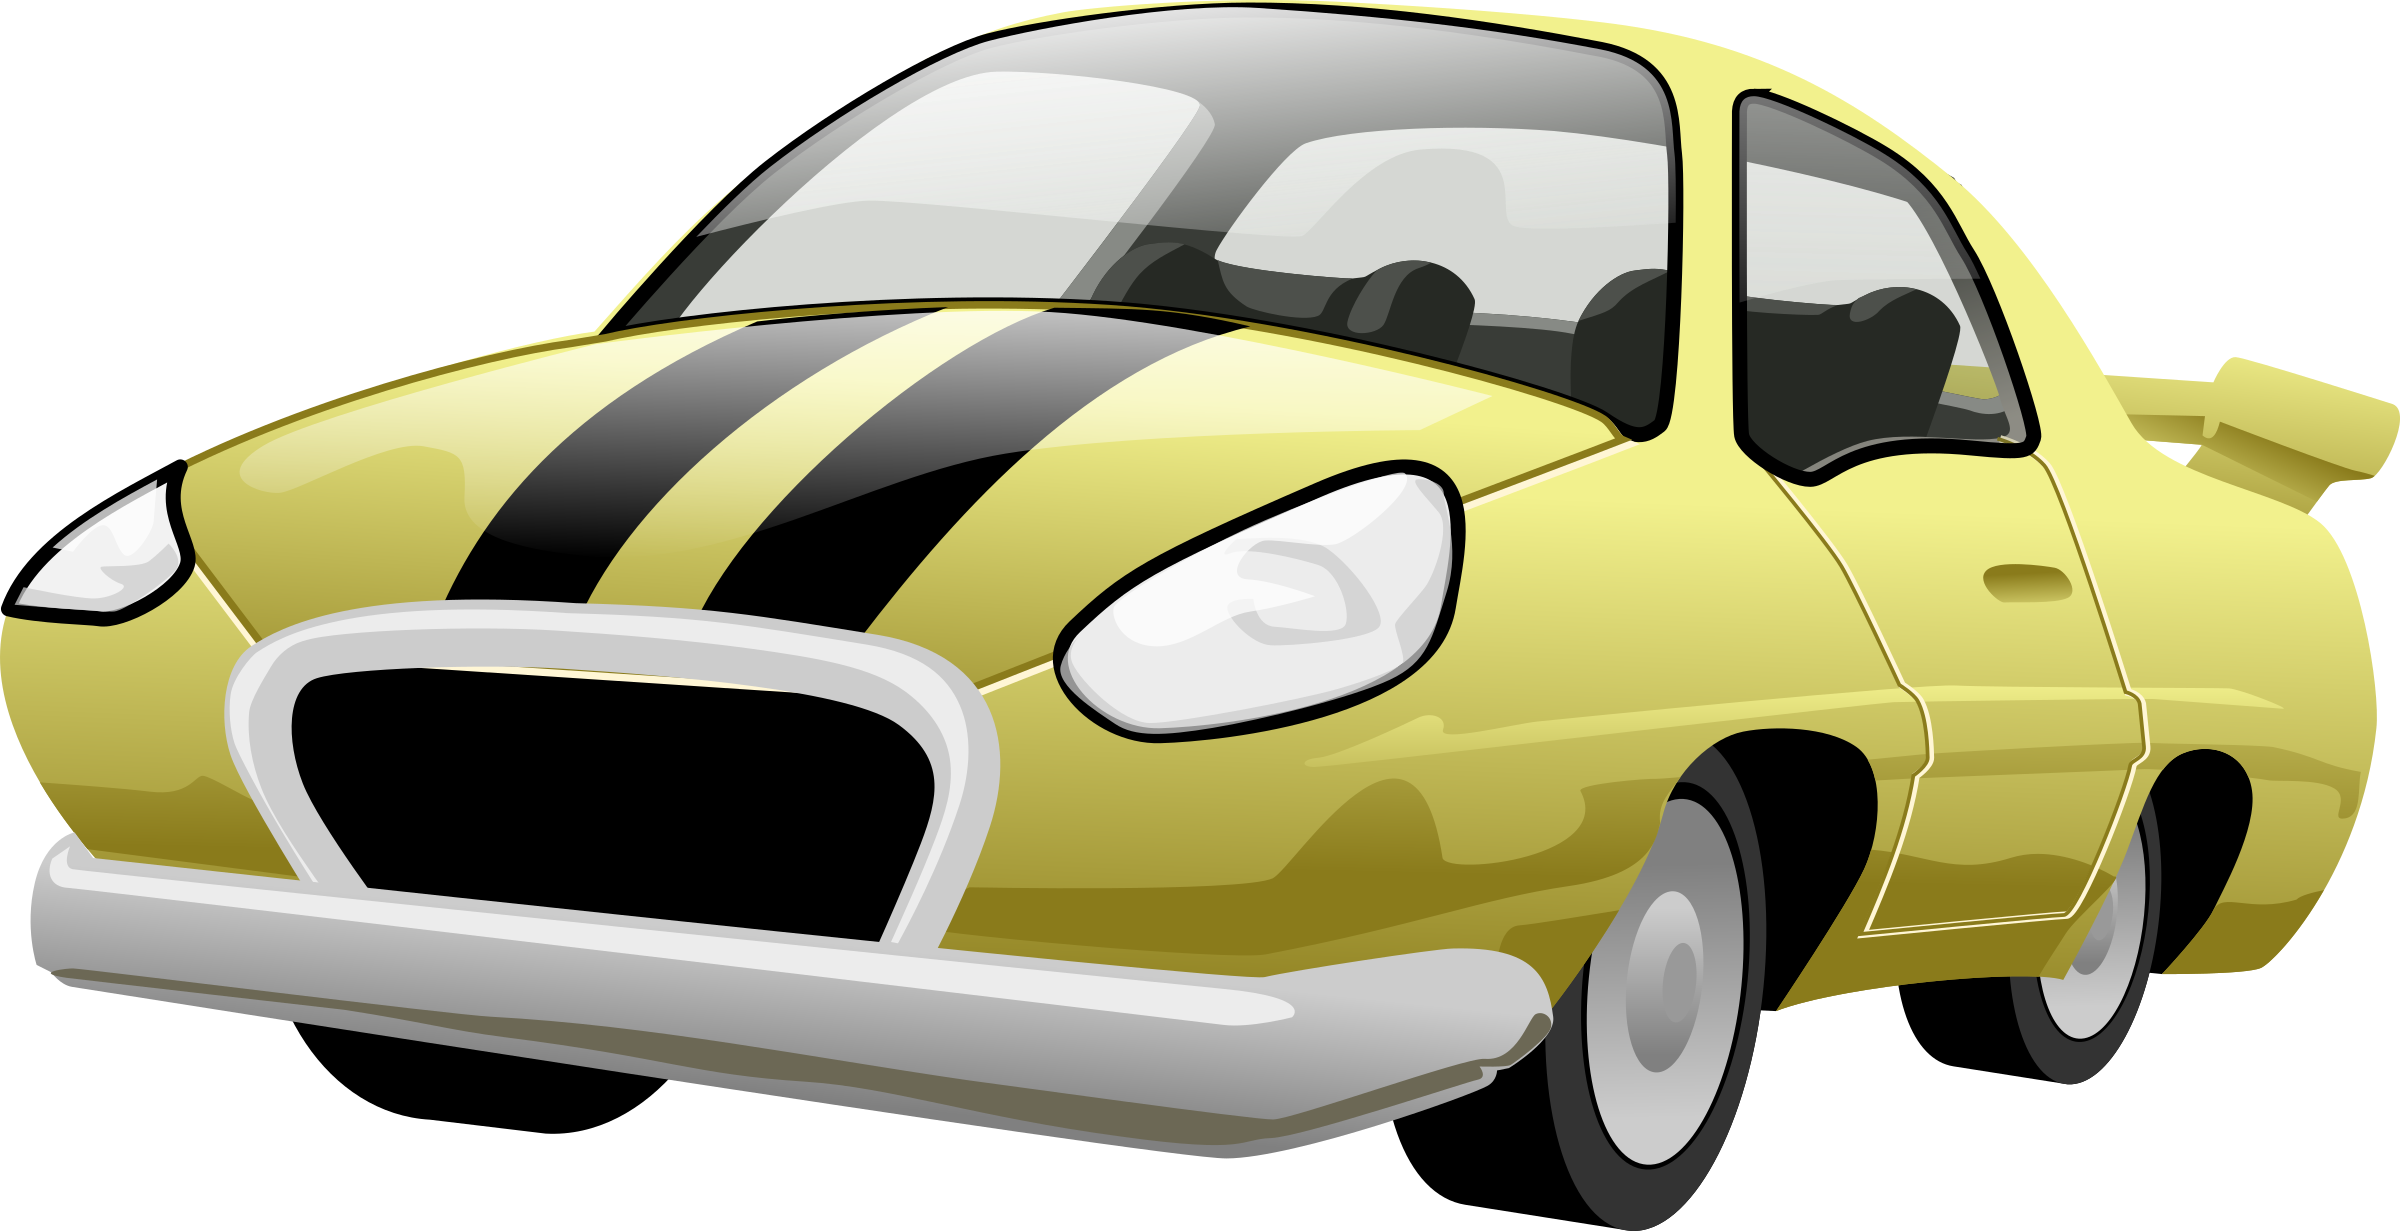 City car clipart banner library library Clipart - sport car banner library library